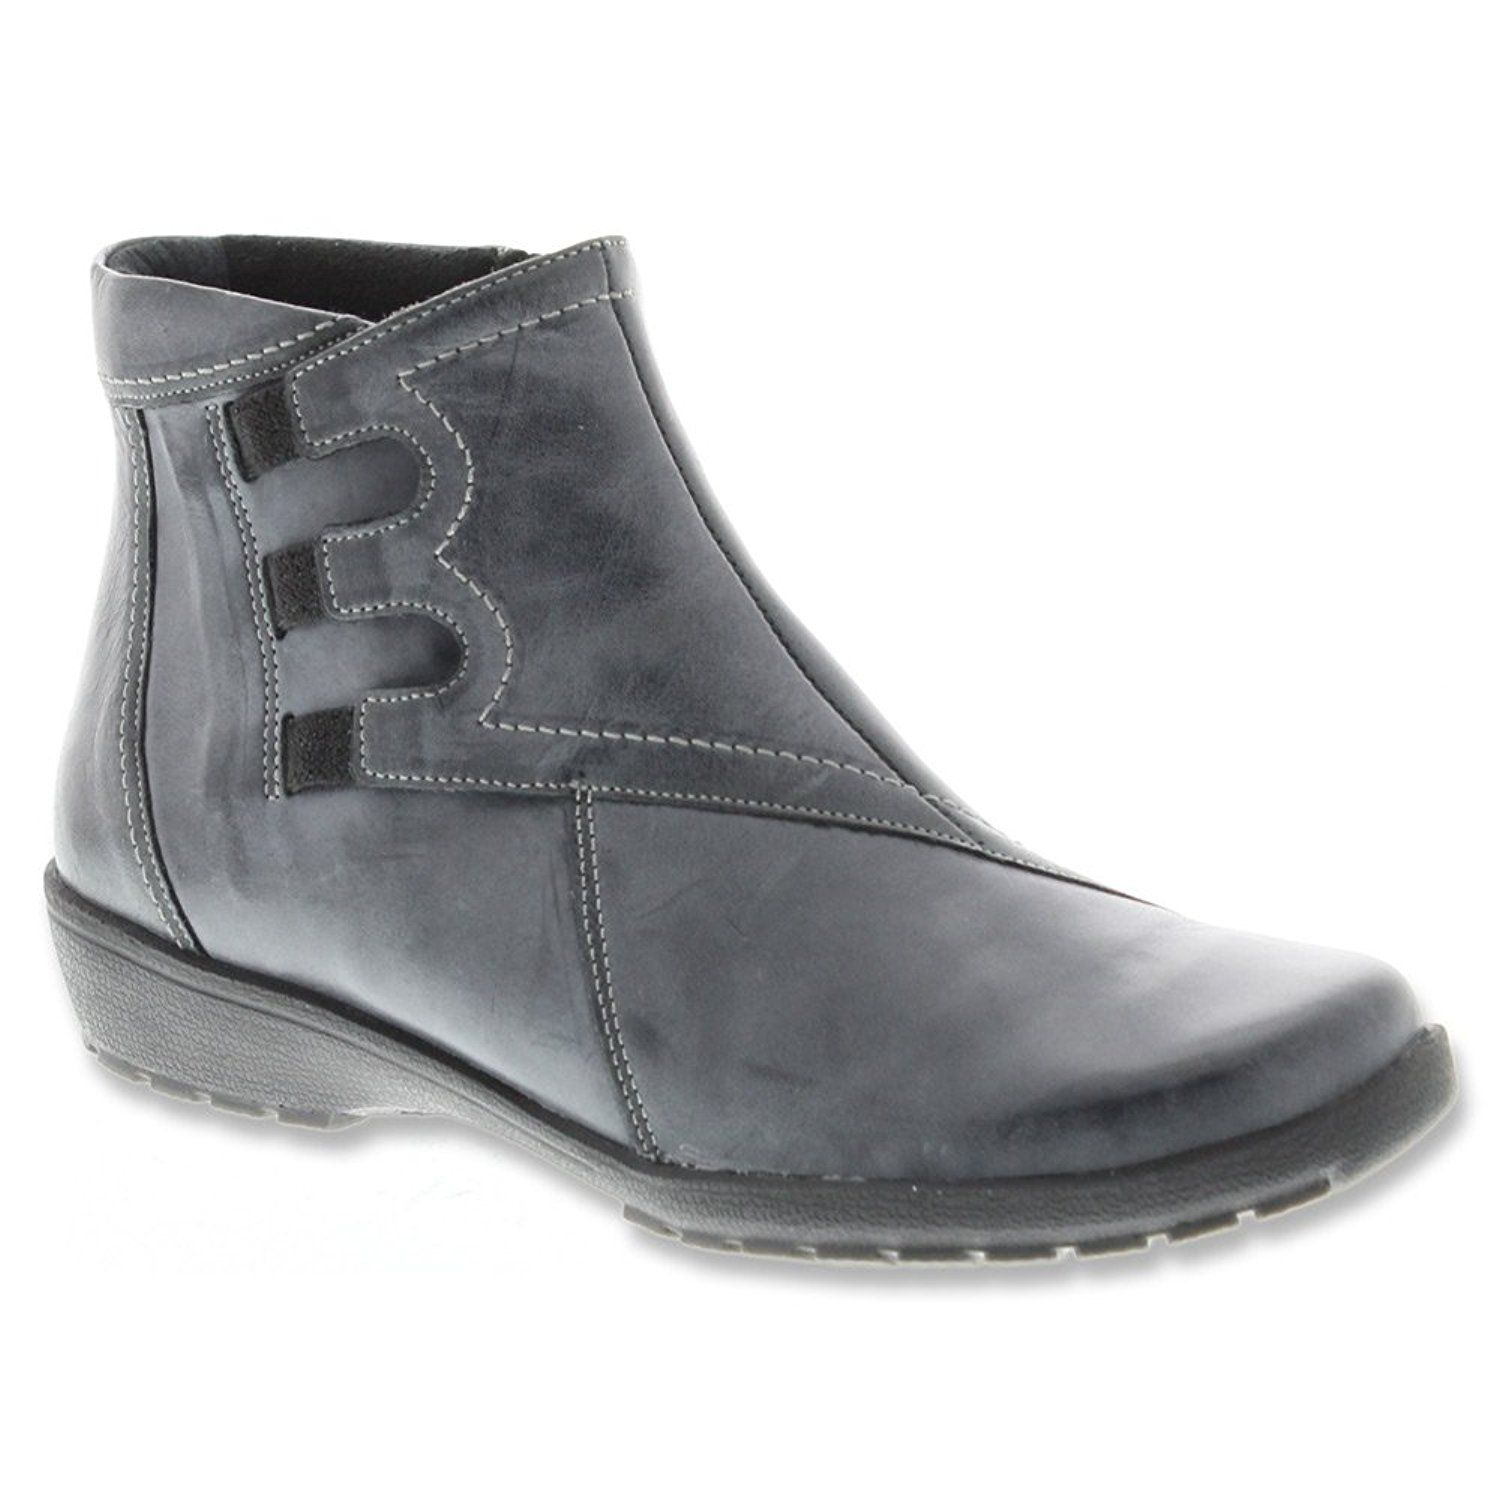 Spring Step Women's Viking Ankle Bootie >>> Startling review available here  ...